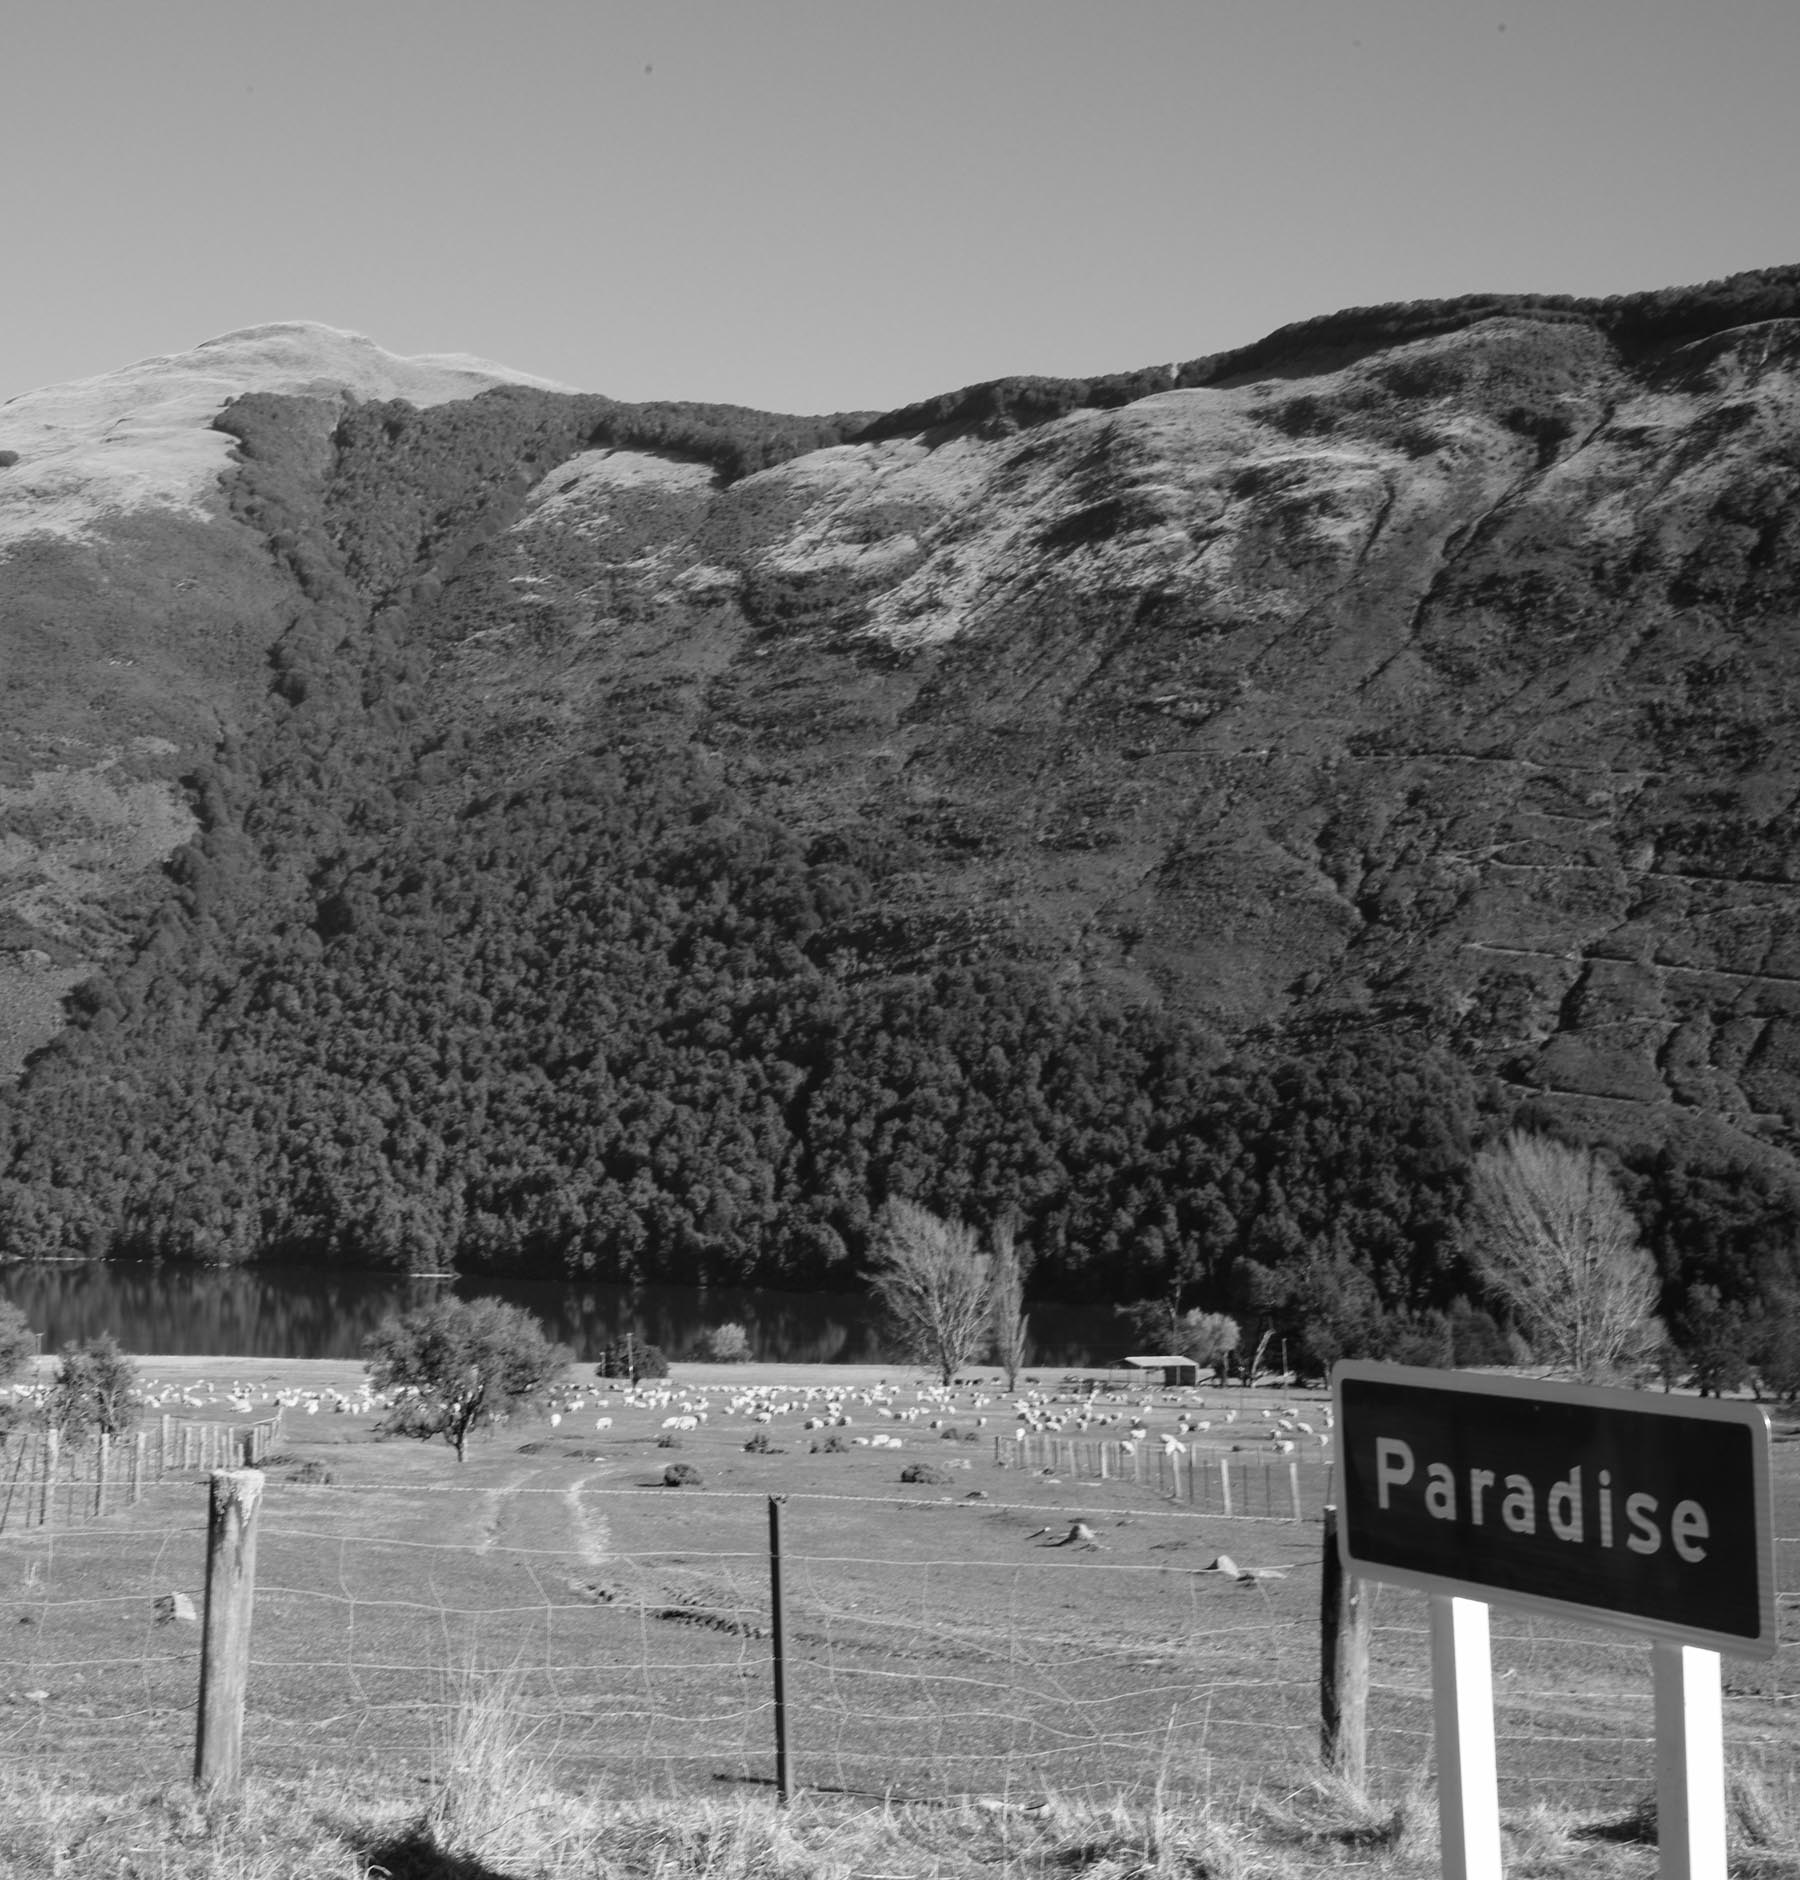 Paradise, New Zealand (near the setting of the same name)